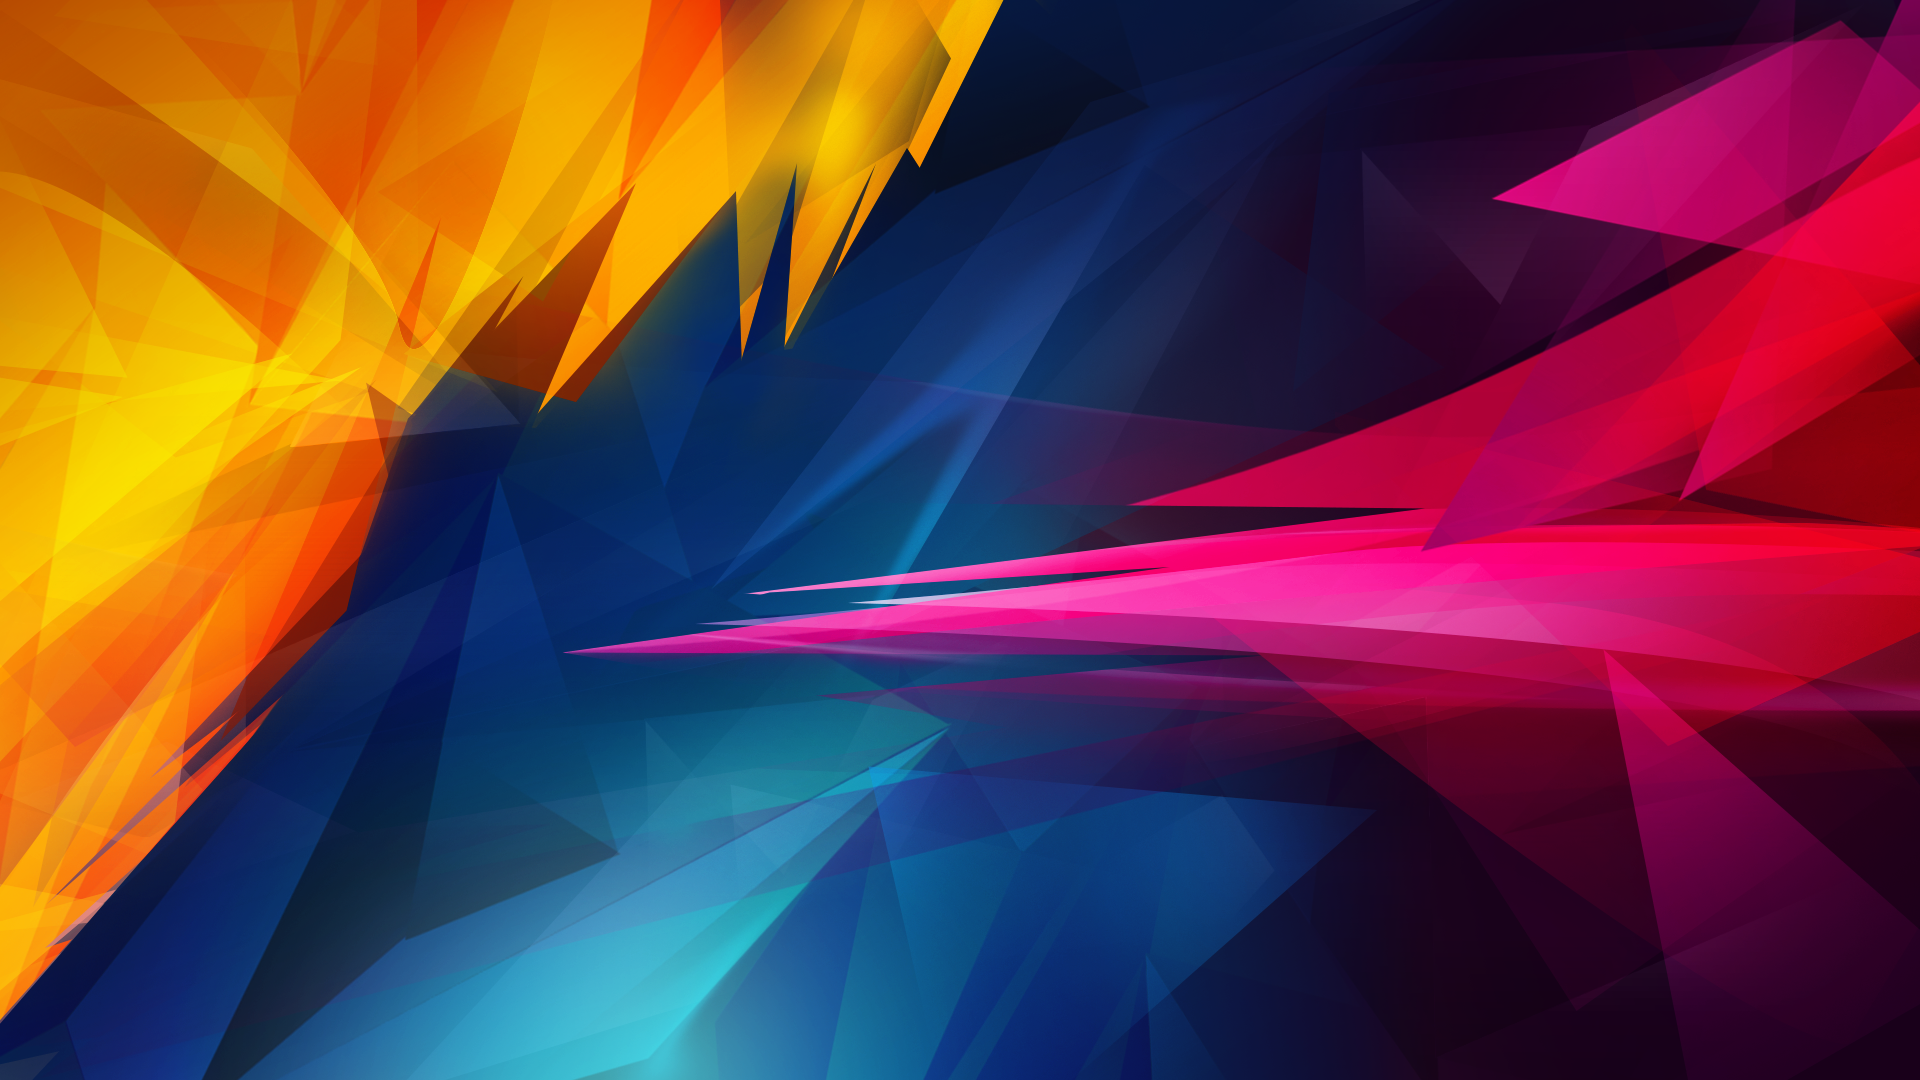 2014076baabstract wallpaper 1080p by supersaejang d7ajj1ppng 1920x1080